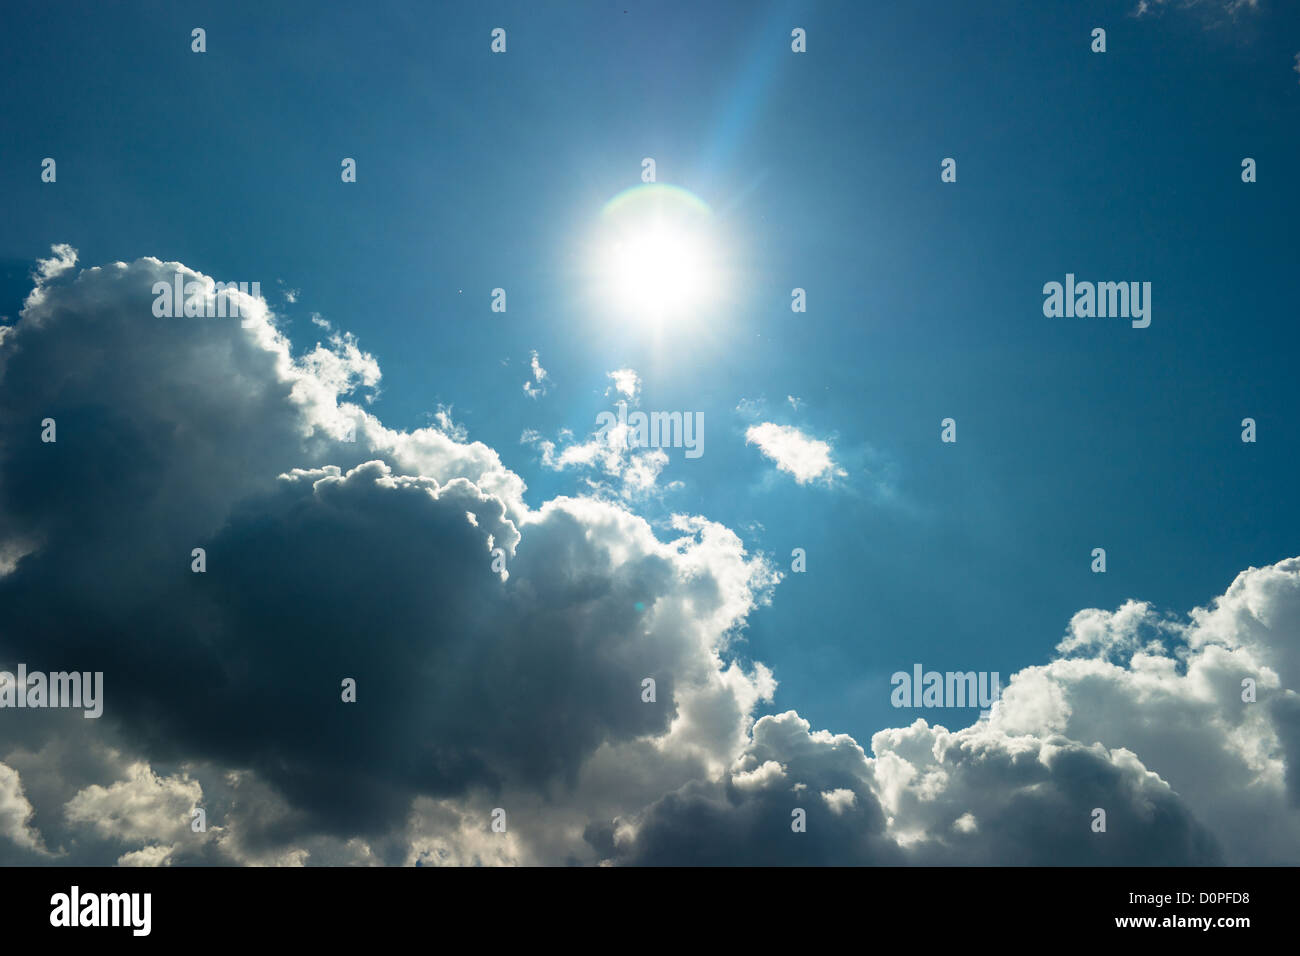 Atmospheric convection - Stock Image